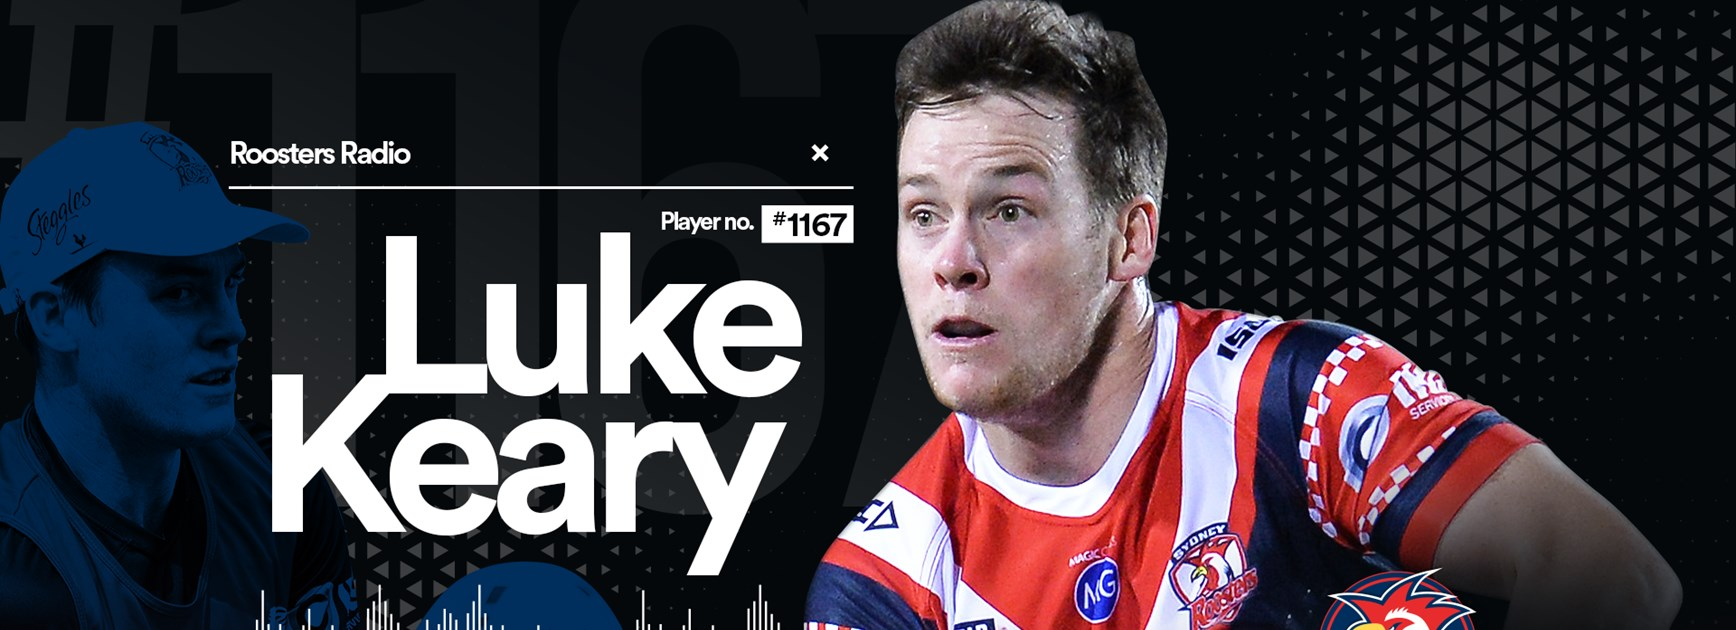 Roosters Radio Kicks Off With Luke Keary